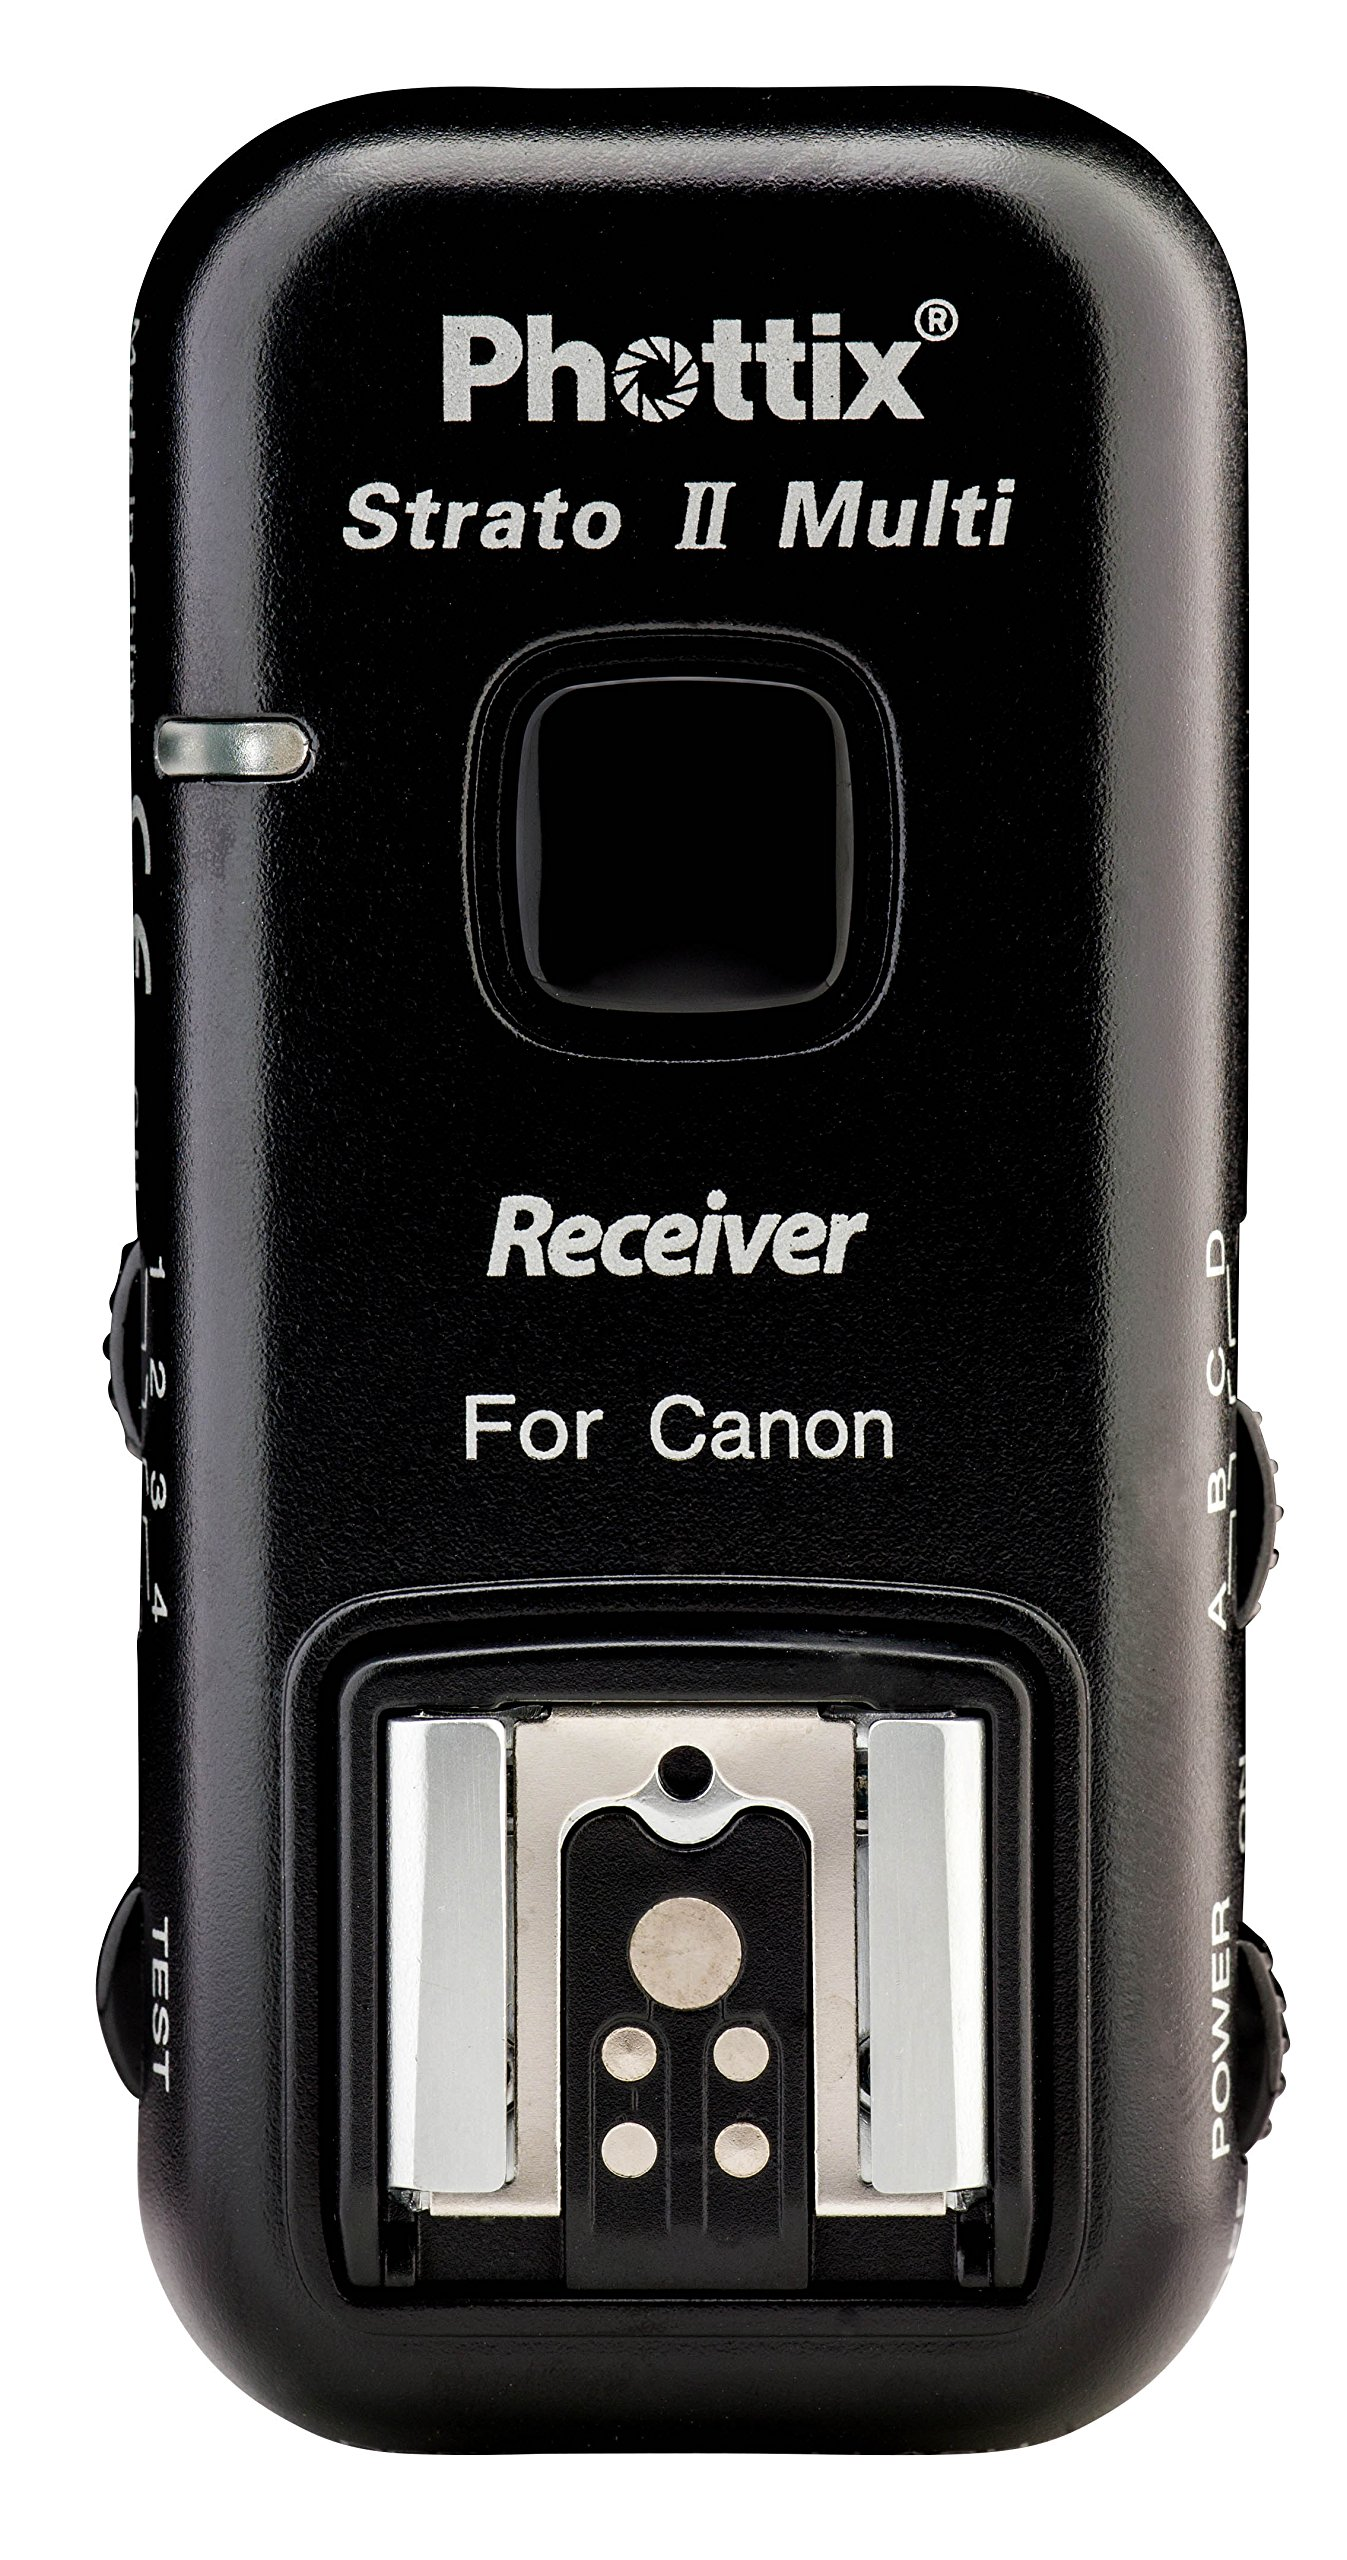 Phottix Strato II Multi 5-In-1 Canon Receiver by Phottix